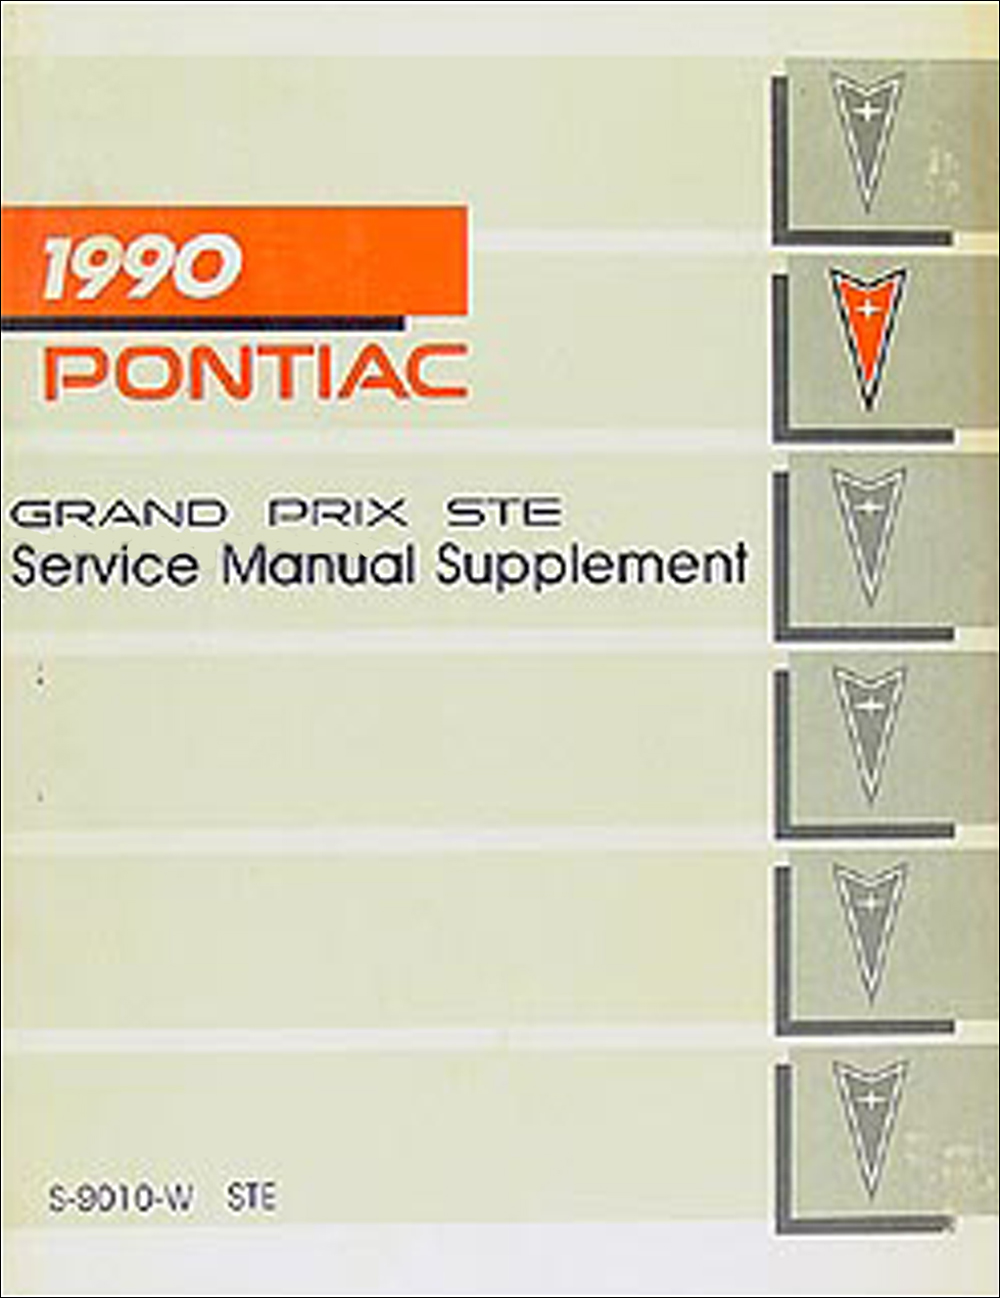 1990 Pontiac Grand Prix STE Repair Manual Original Supplement